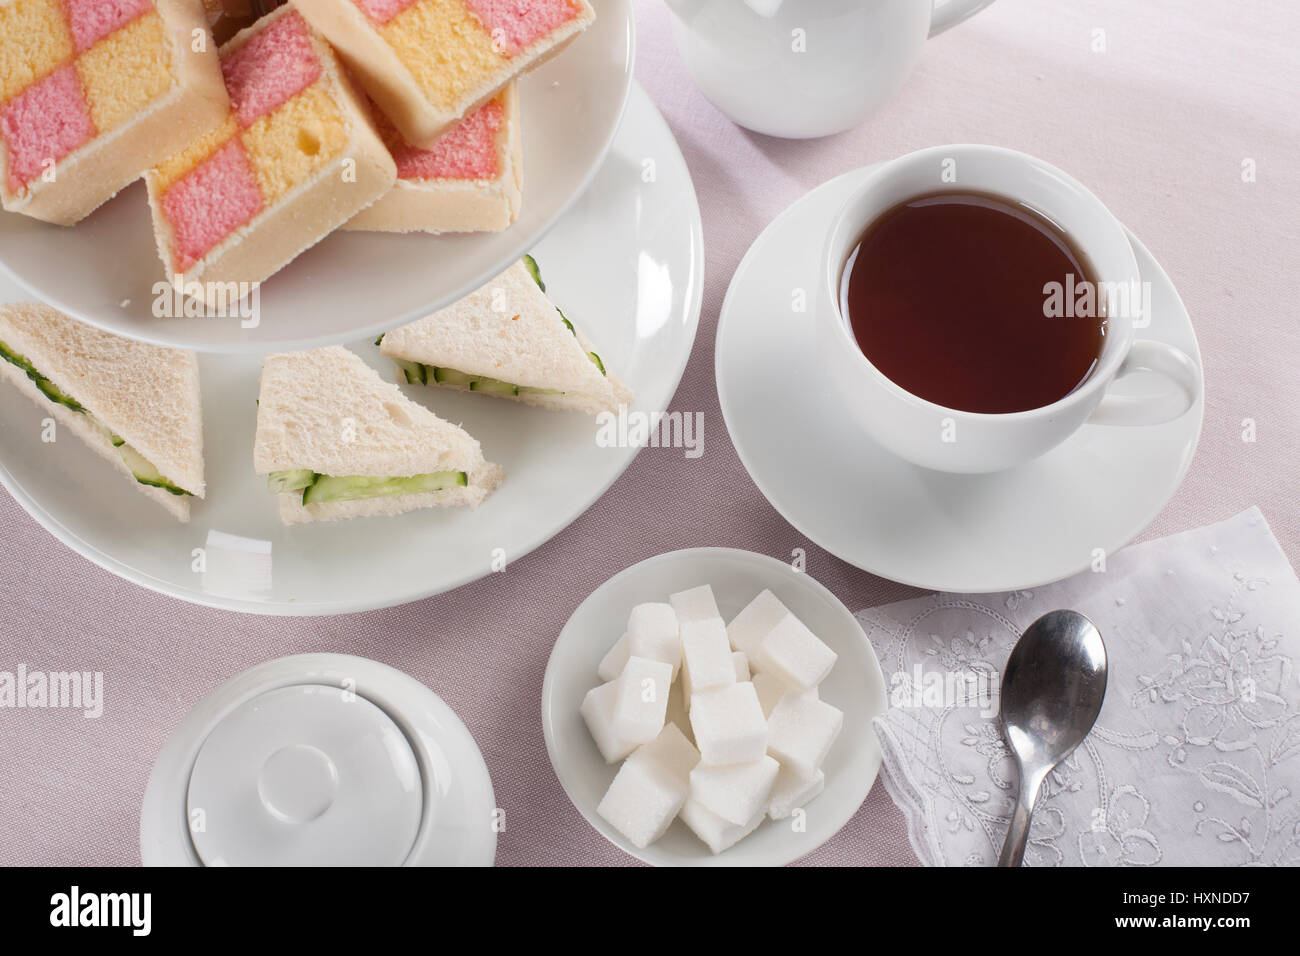 Tea with sugar cubes and English teatime snacks of cucumber sandwiches and battenburg cakes - Stock Image